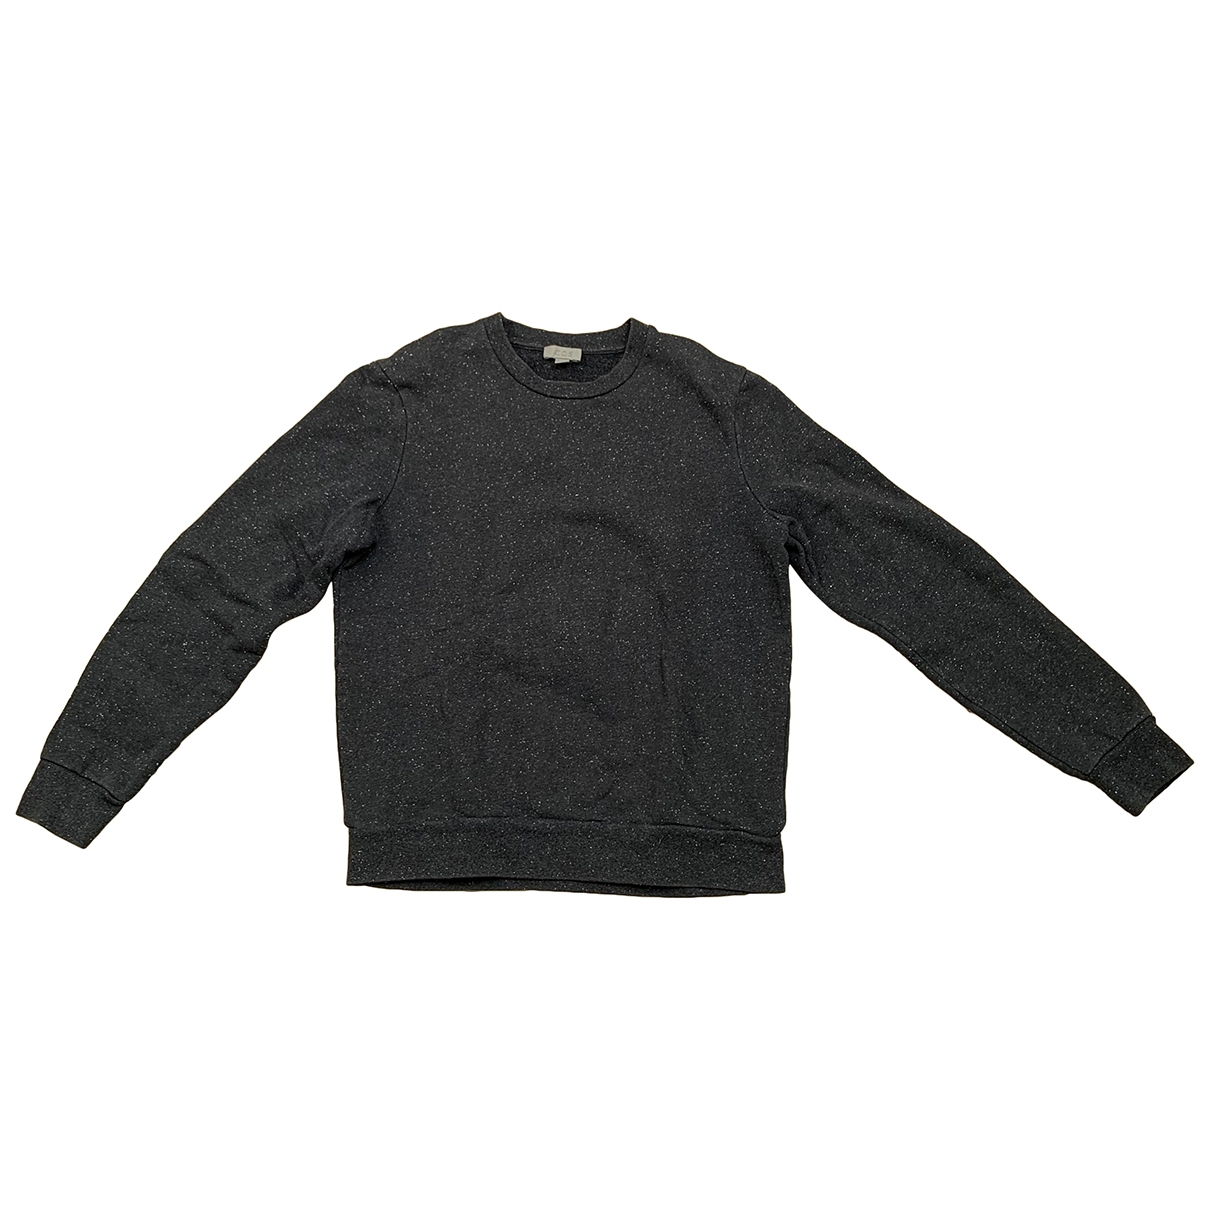 Cos \N Anthracite Cotton Knitwear for Women S International